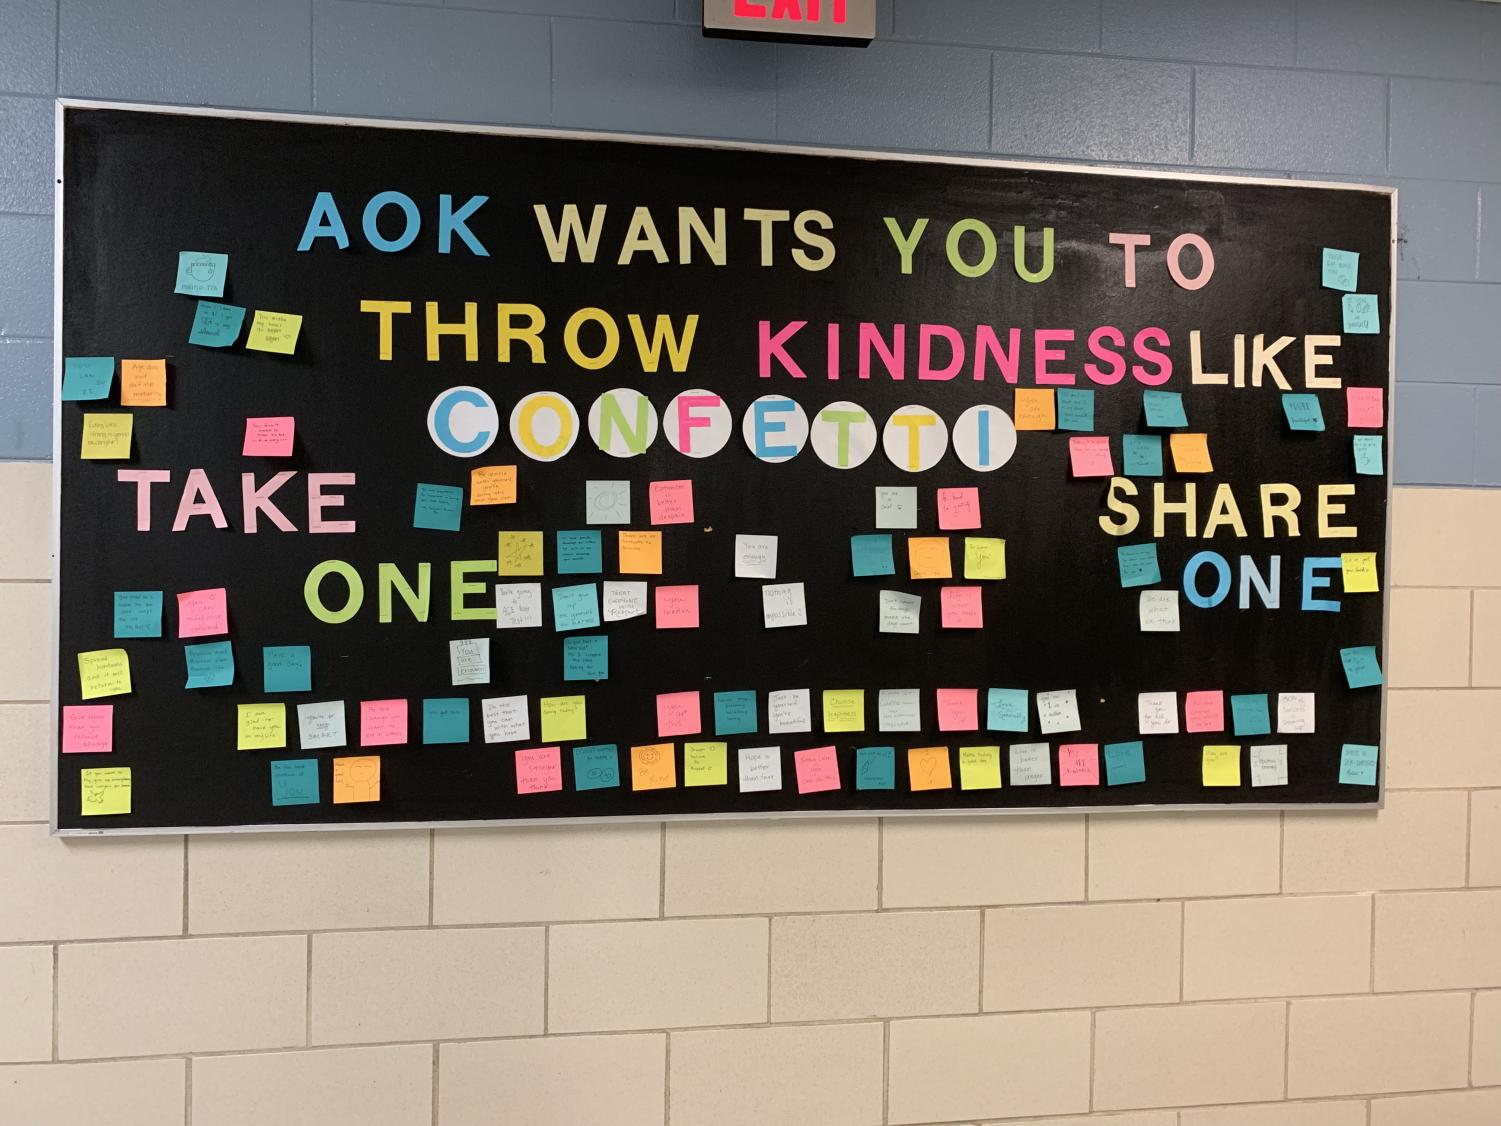 Acts of Kindness board of complements in the science hall.